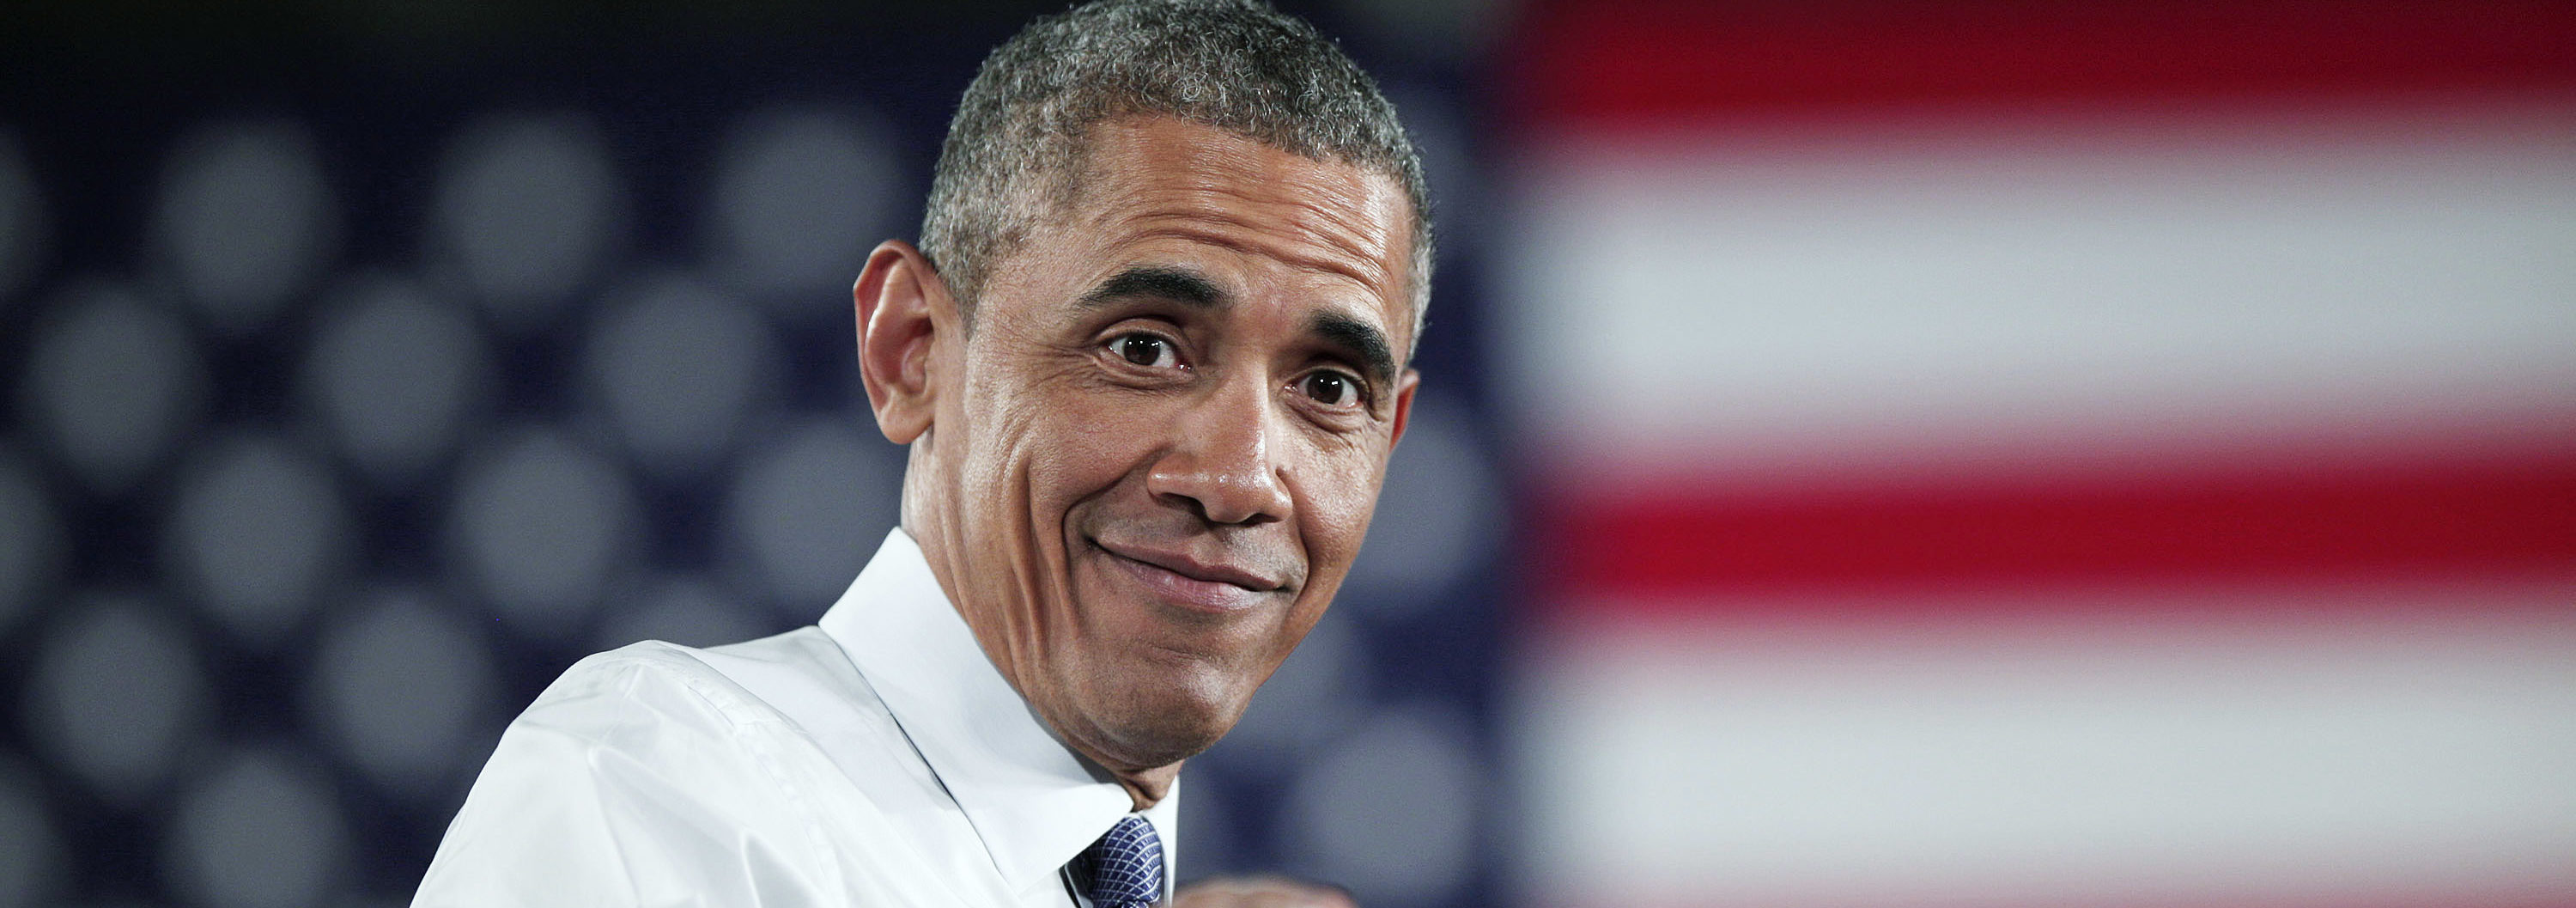 When You Hear What Obama Just Said About Healthcare You Will Know Irony Is Officially Dead